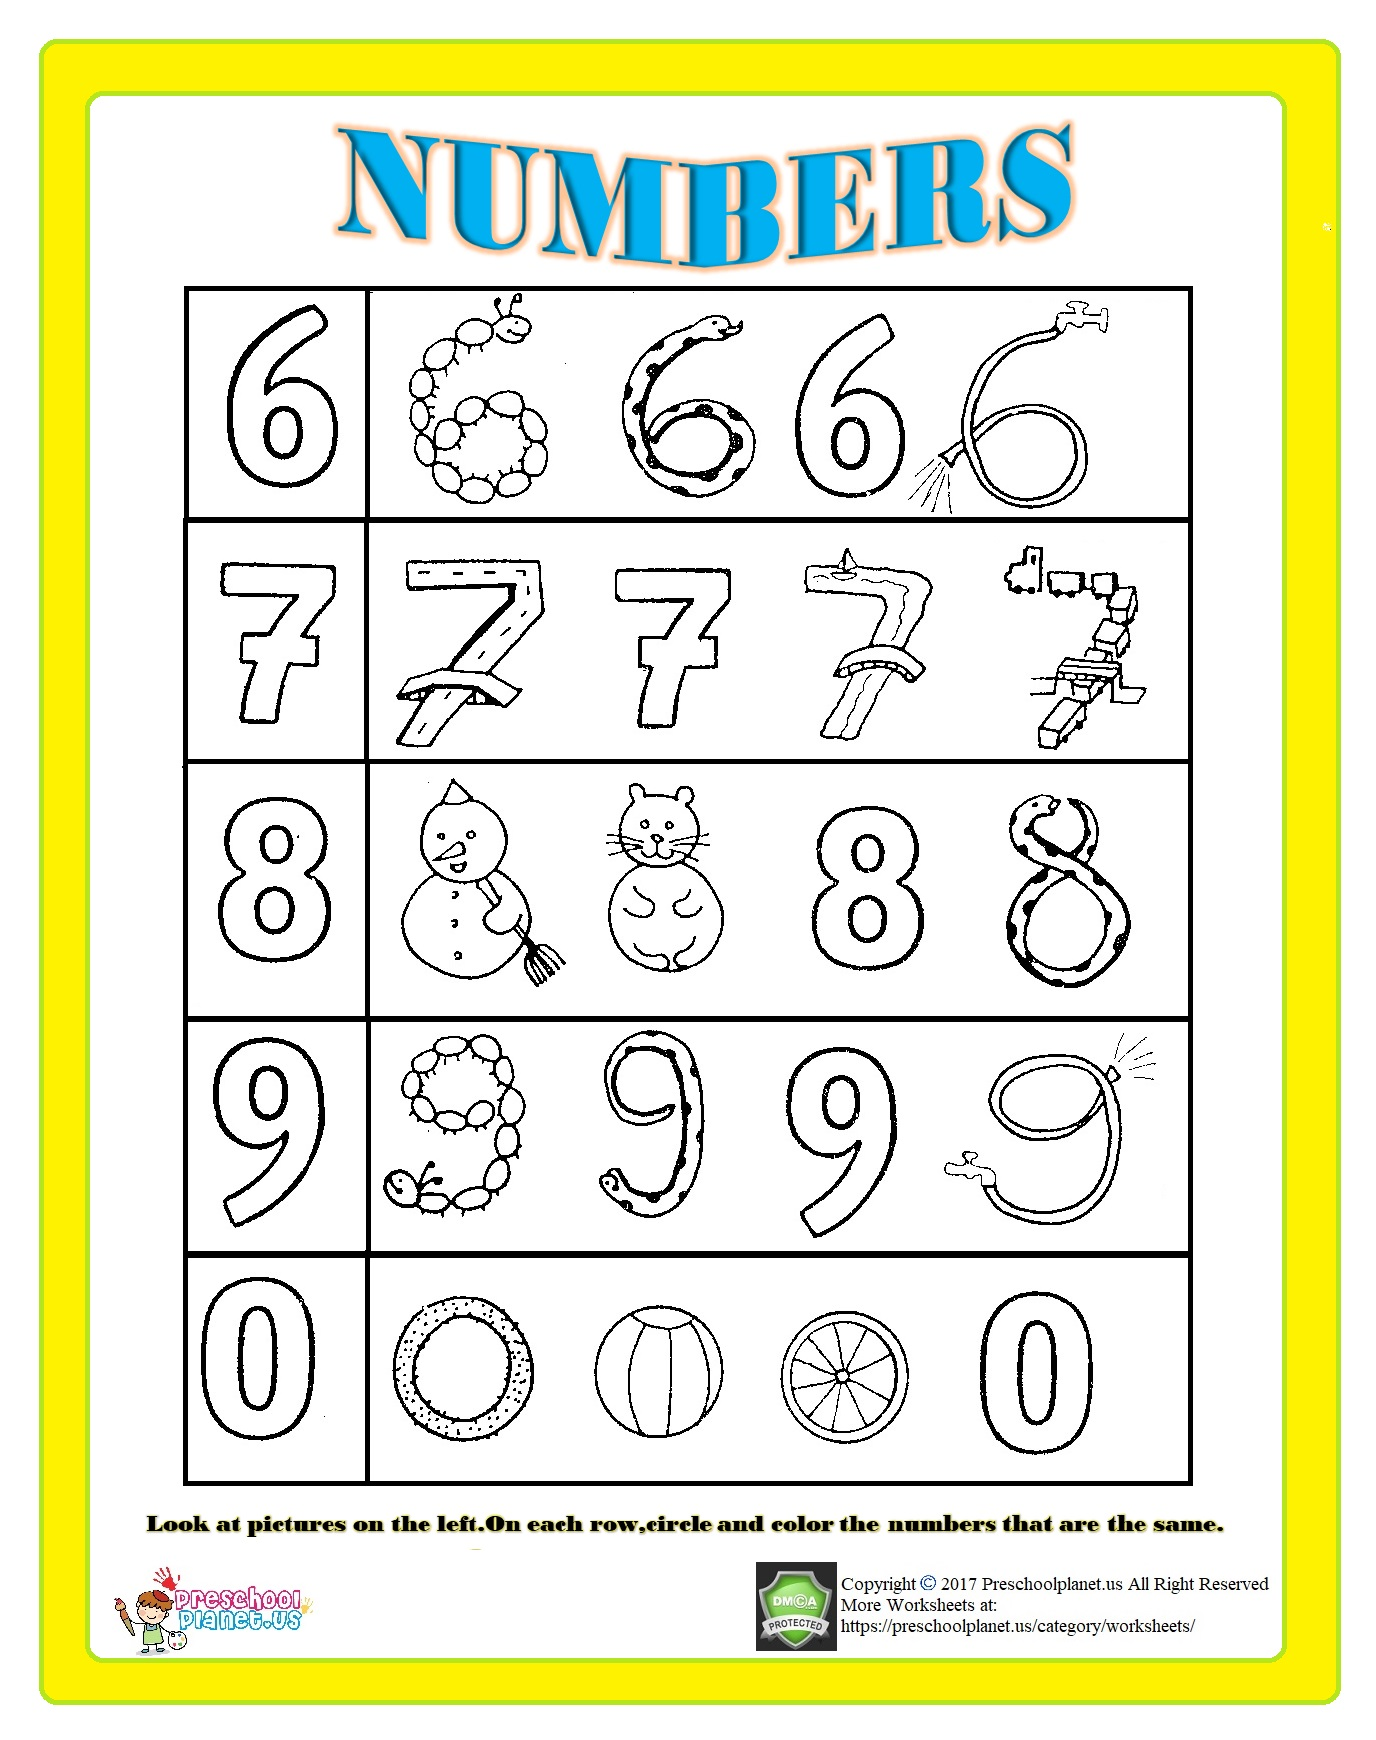 Number 2 Worksheet For Kids Preschoolplanet